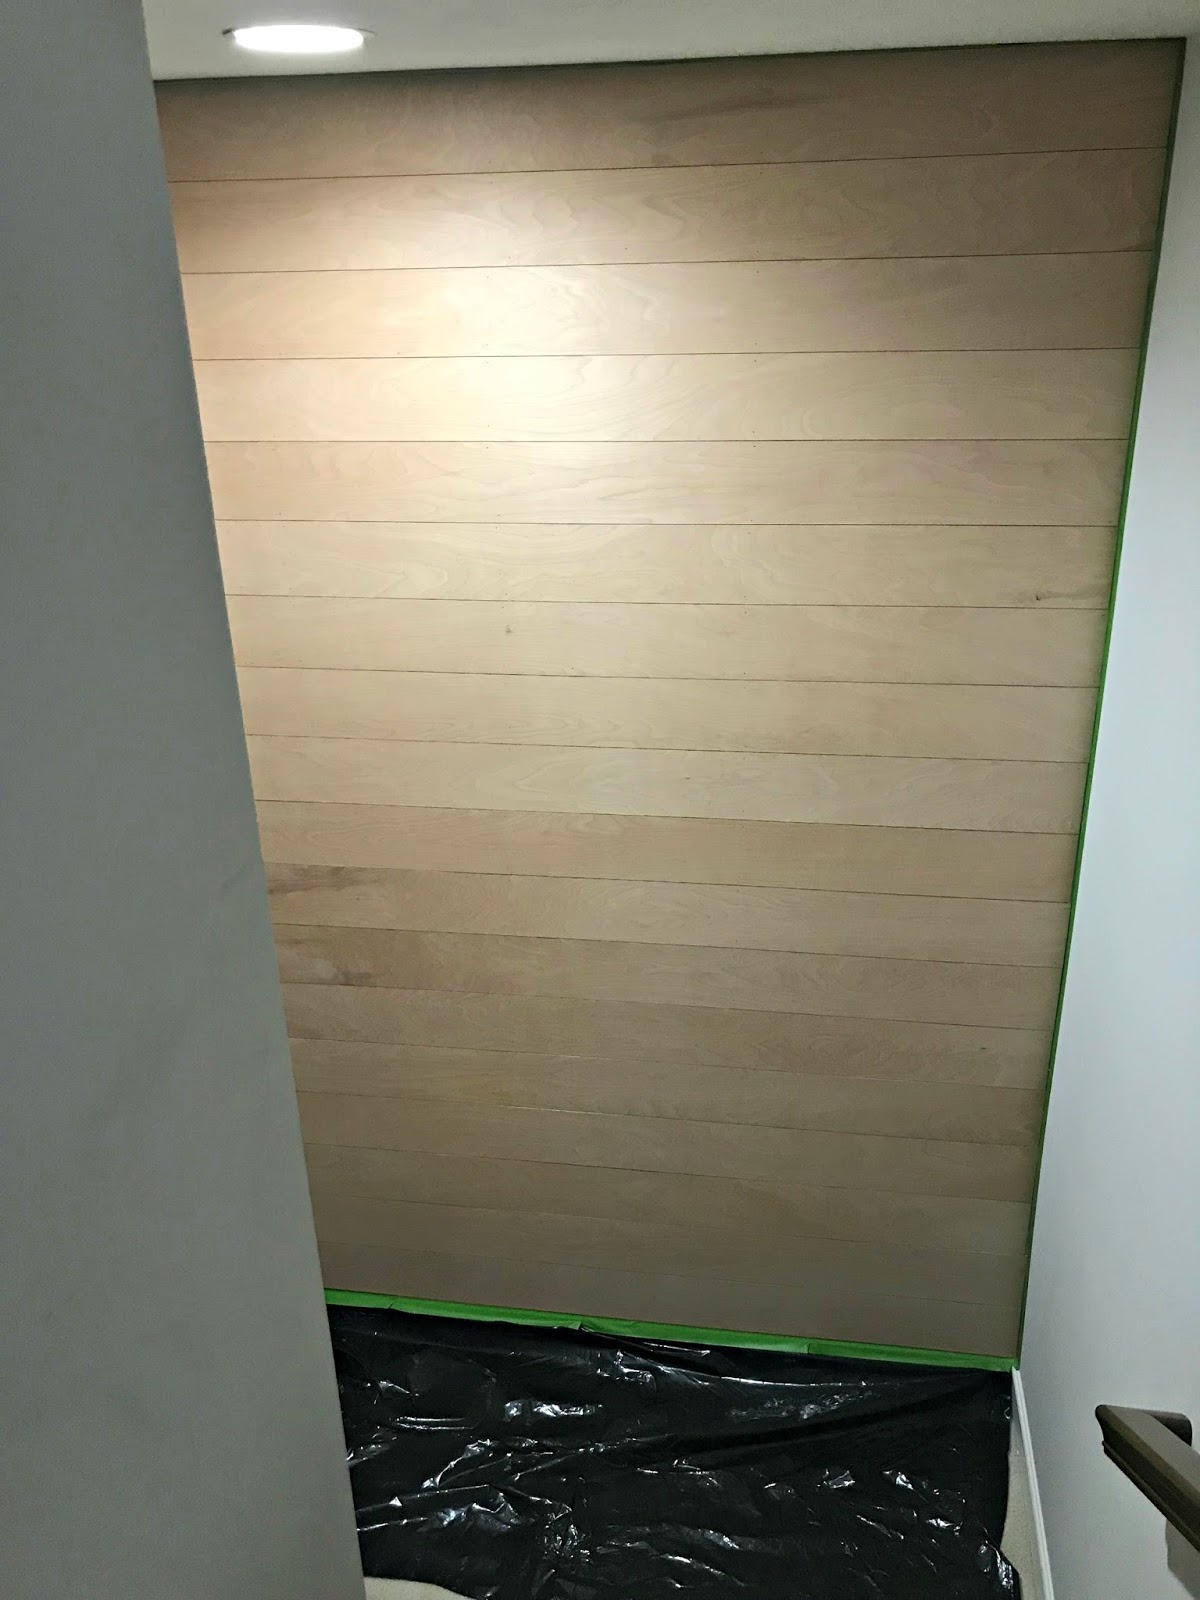 How to plank a wall with wood